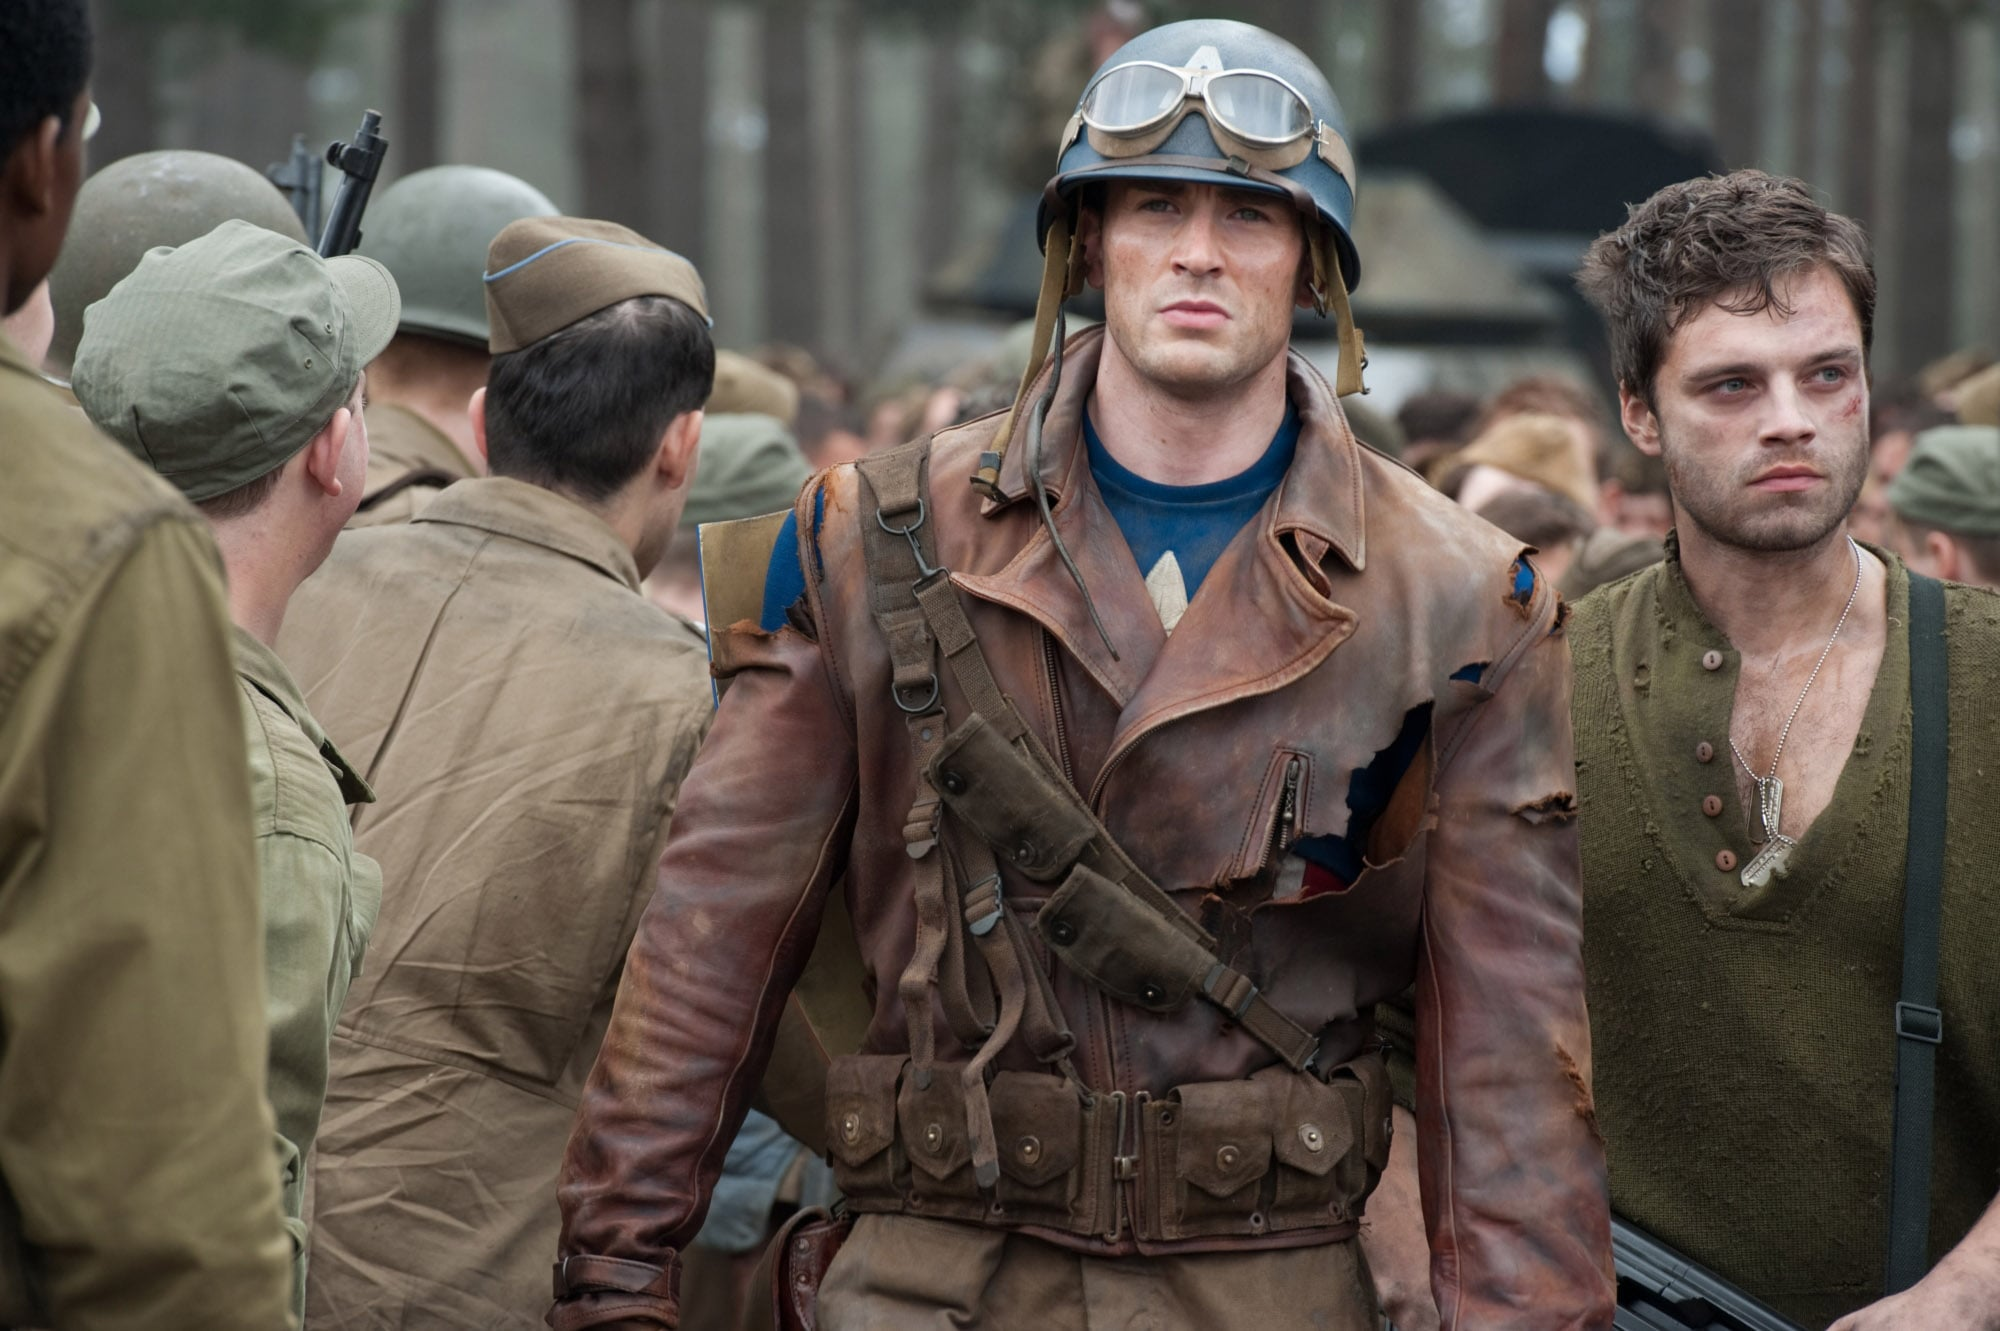 CAPTAIN AMERICA: THE FIRST AVENGER, from left: Chris Evans, Sebastian Stan, 2011. ph: Jay Maidment/Paramount Pictures/courtesy Everett Collection